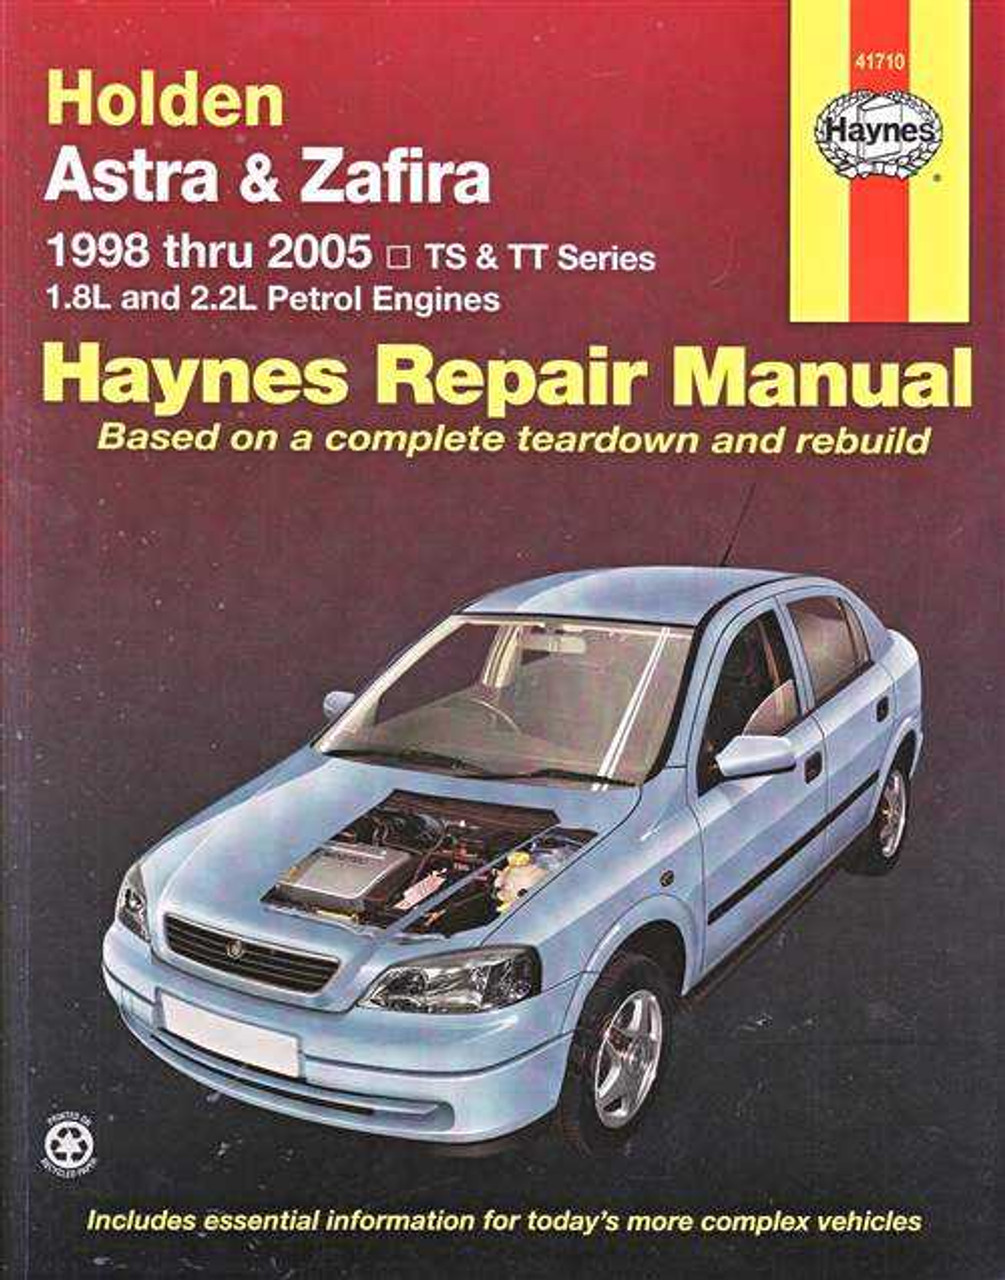 holden astra amp zafira ts tt series 1998 2005 workshop manual rh automotobookshop com au manual de usuario astra 2005 manual astra 2005 2.0 pdf